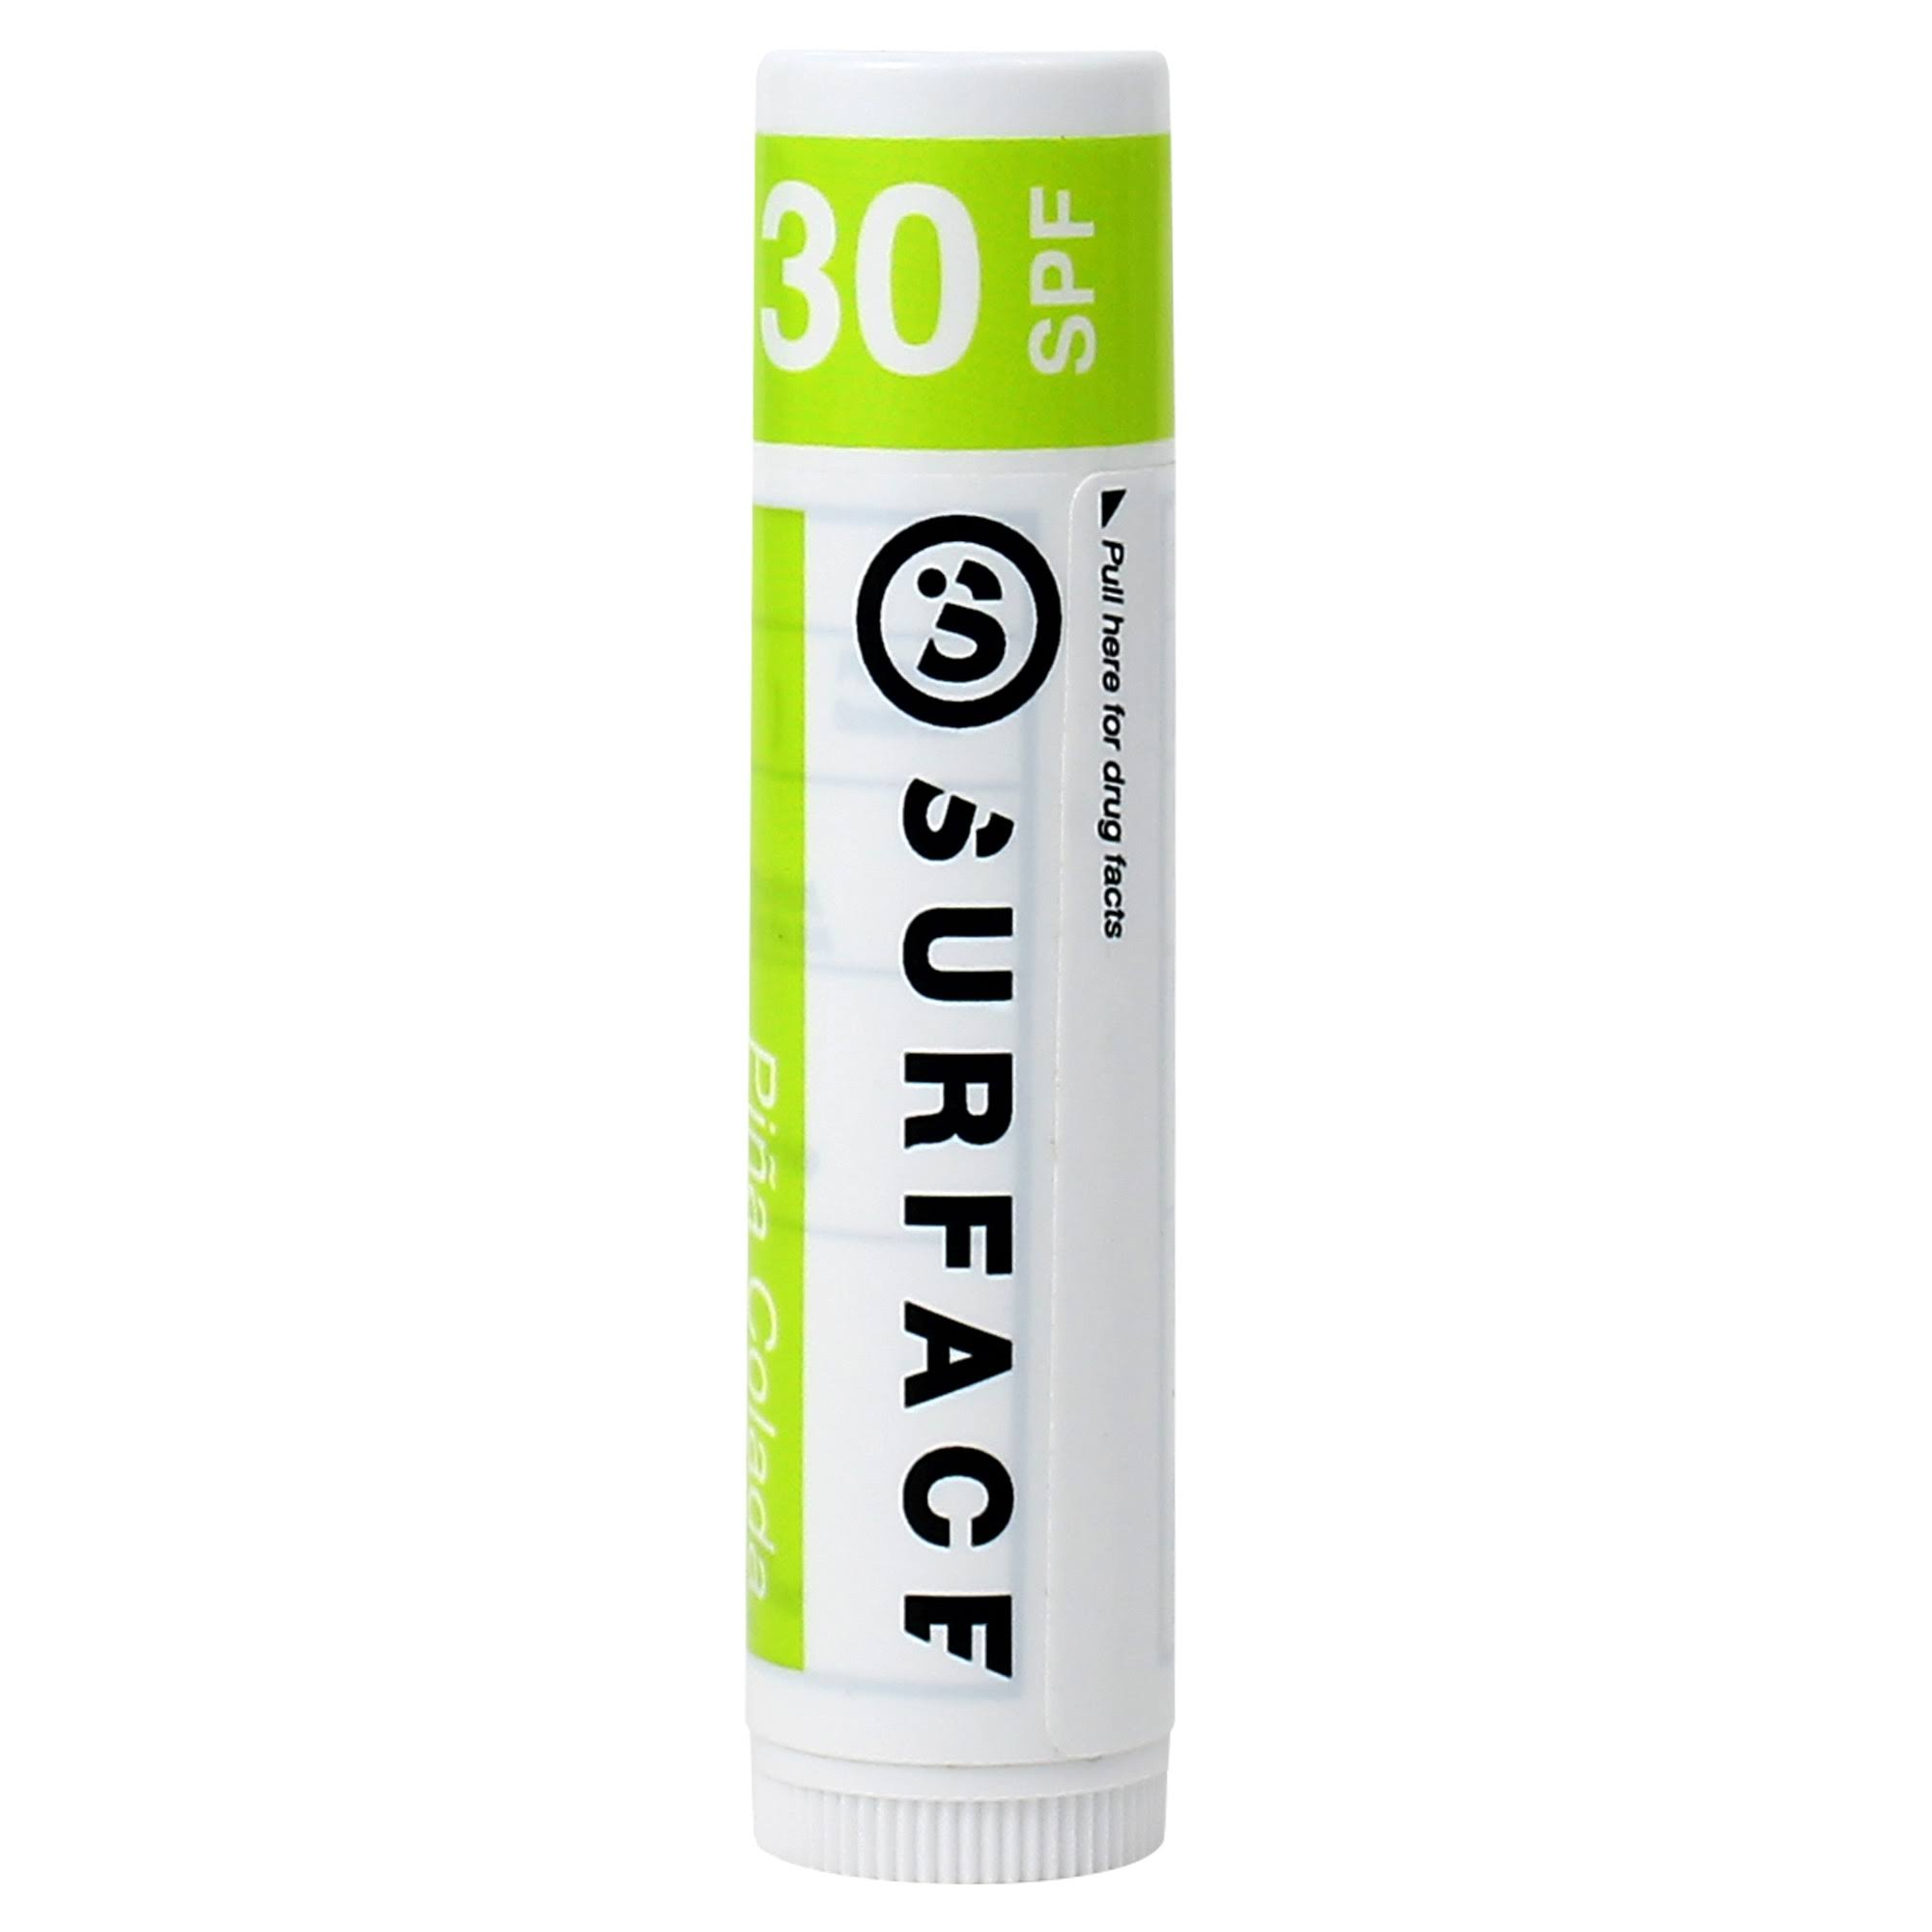 Surface Lip Balm - SPF30 - Pina Colada